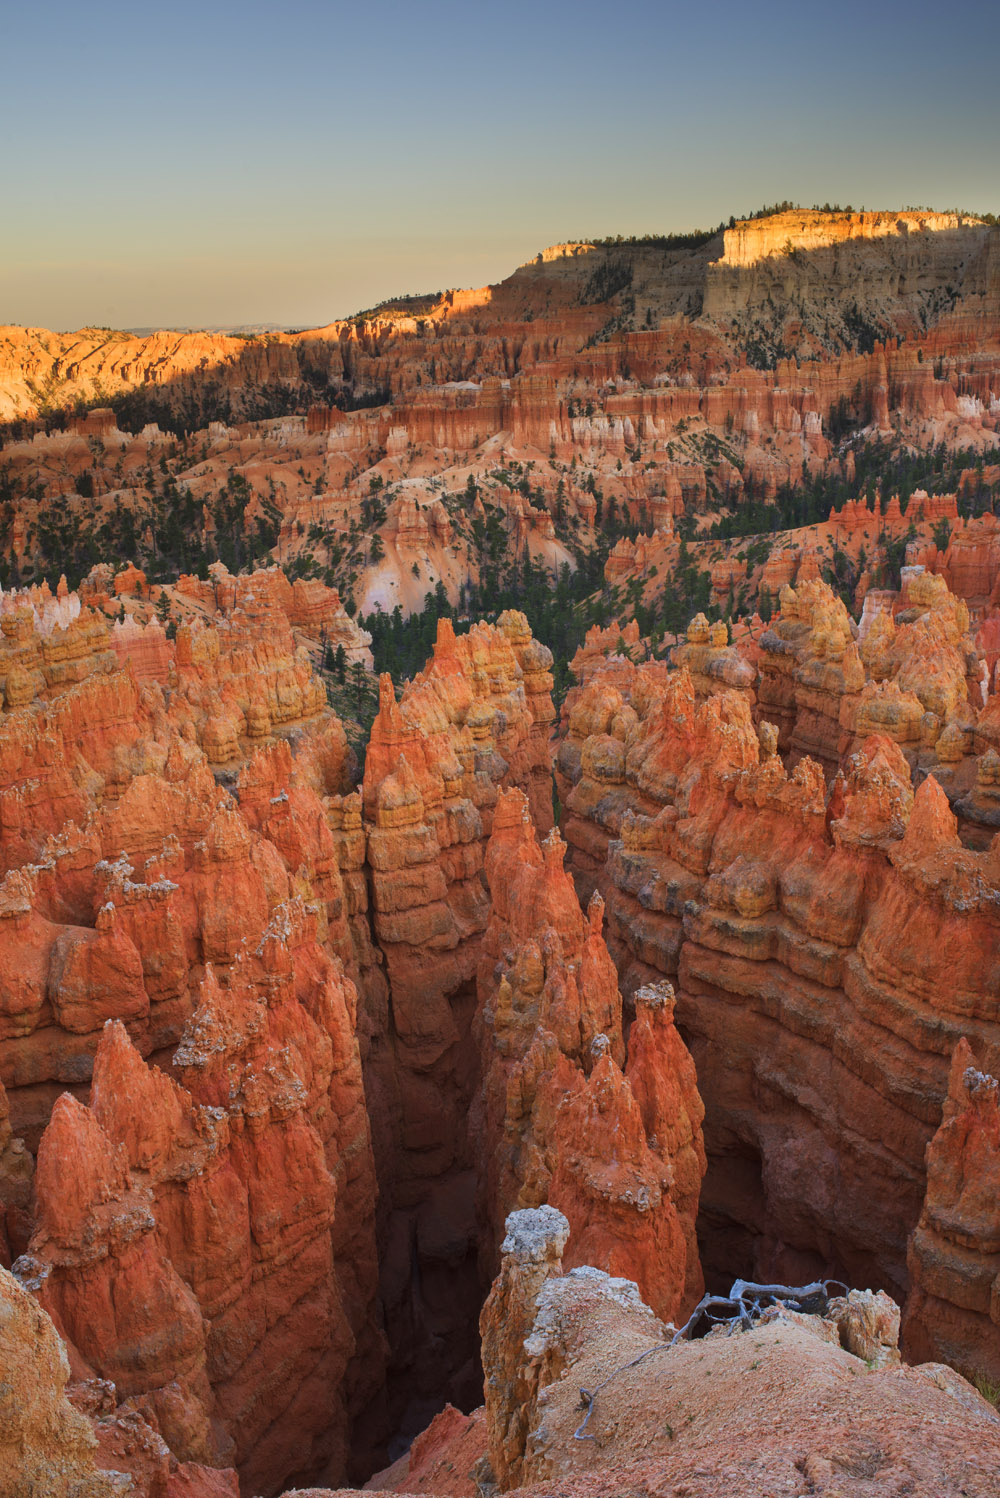 The unique rock formations of Bryce Canyon. © Robert Lowdon